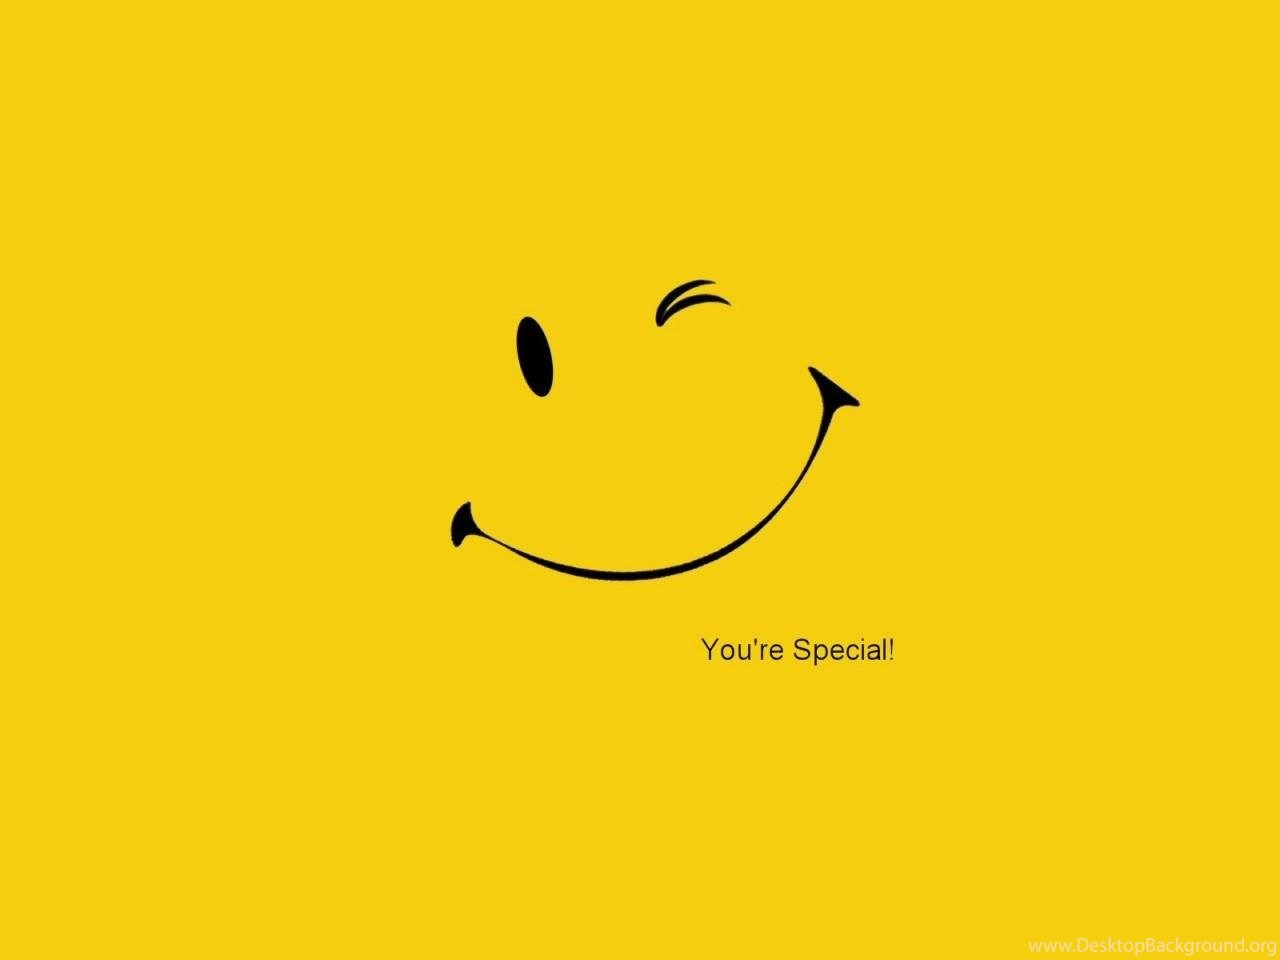 smiley faces wallpapers for mobile phones adsleafcom